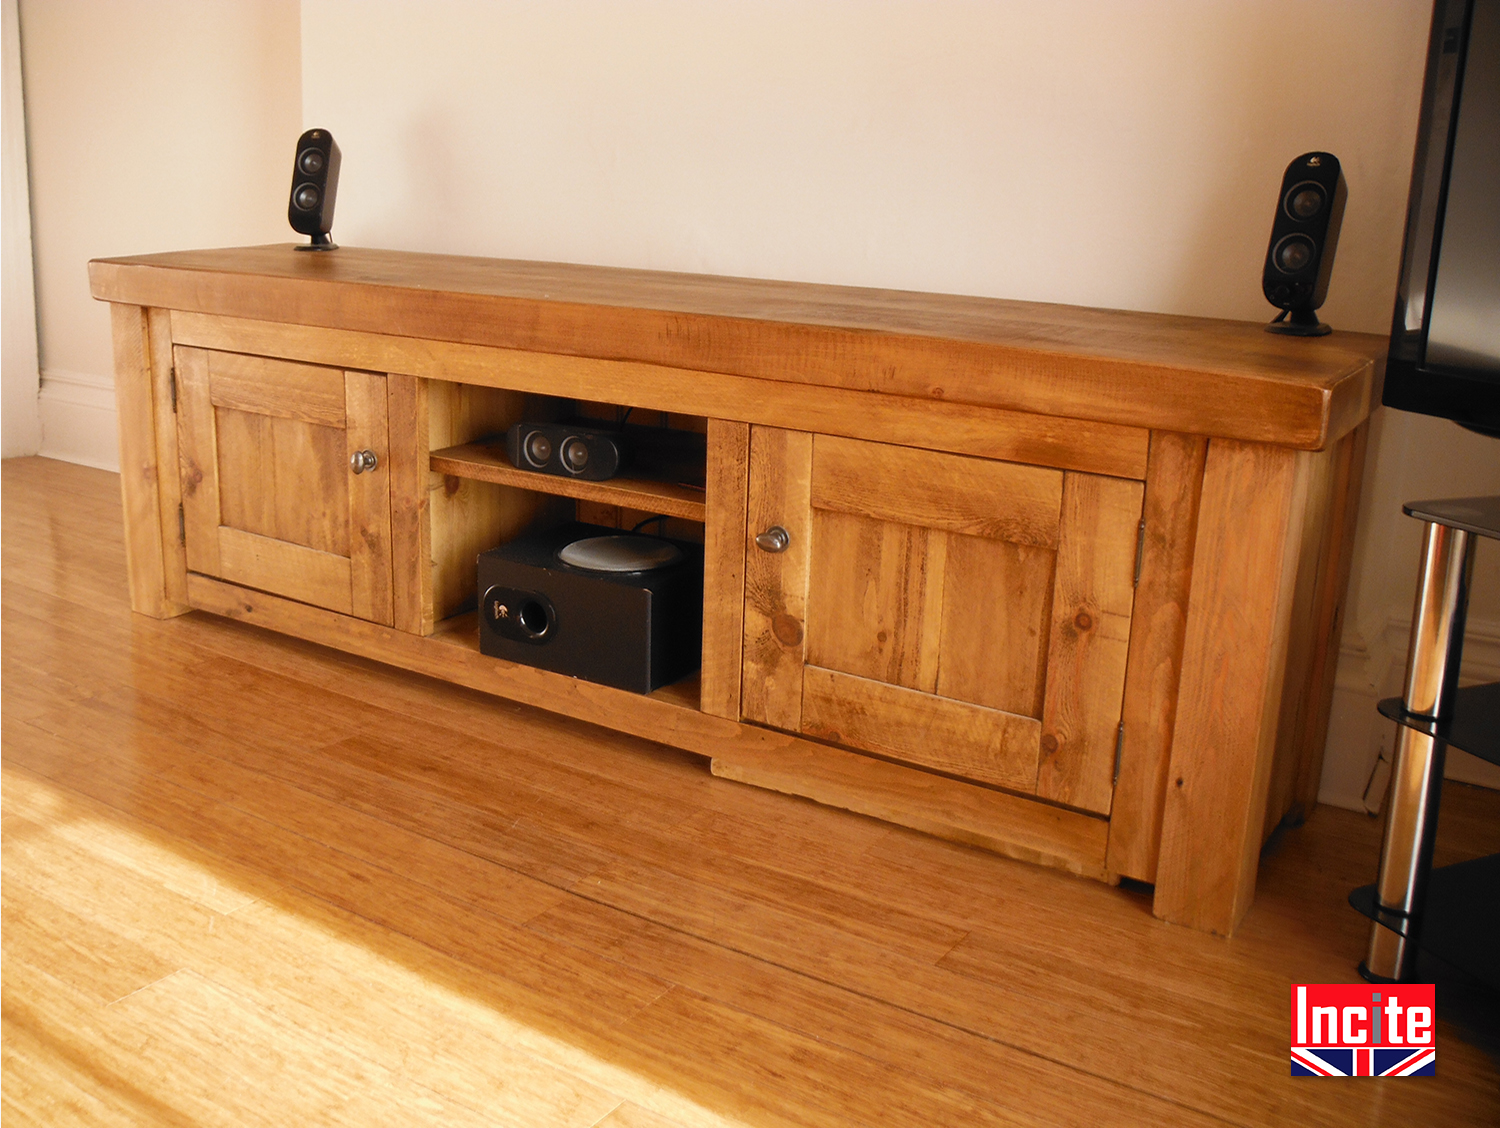 Plank Pine Rustic Handmade Television Cabinets By Incite